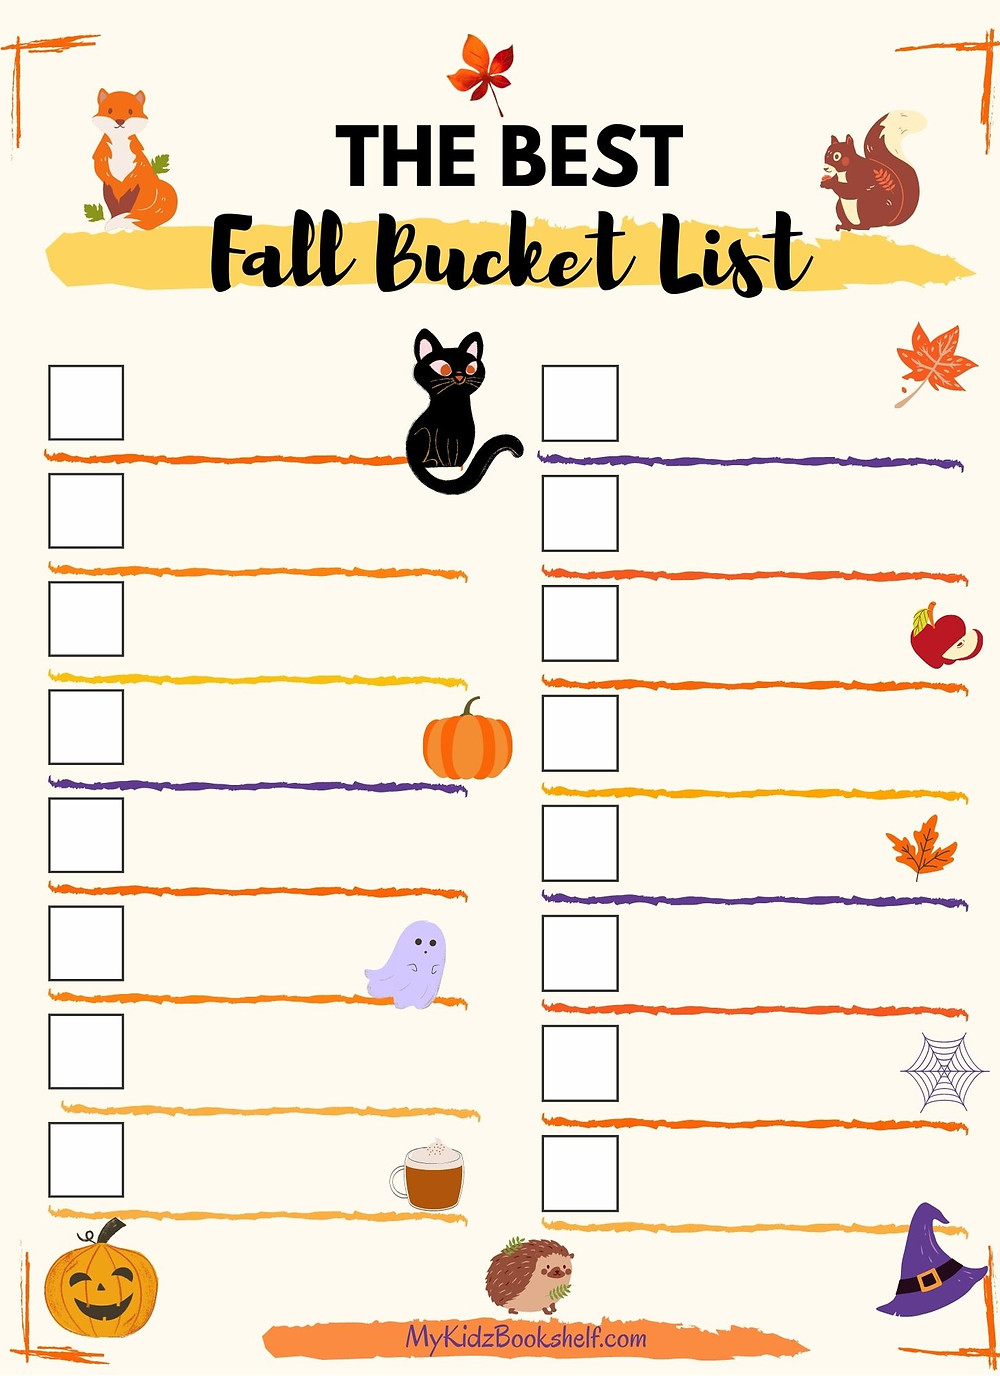 The Best Fall Bucket List fillable printable with black cat and boxes